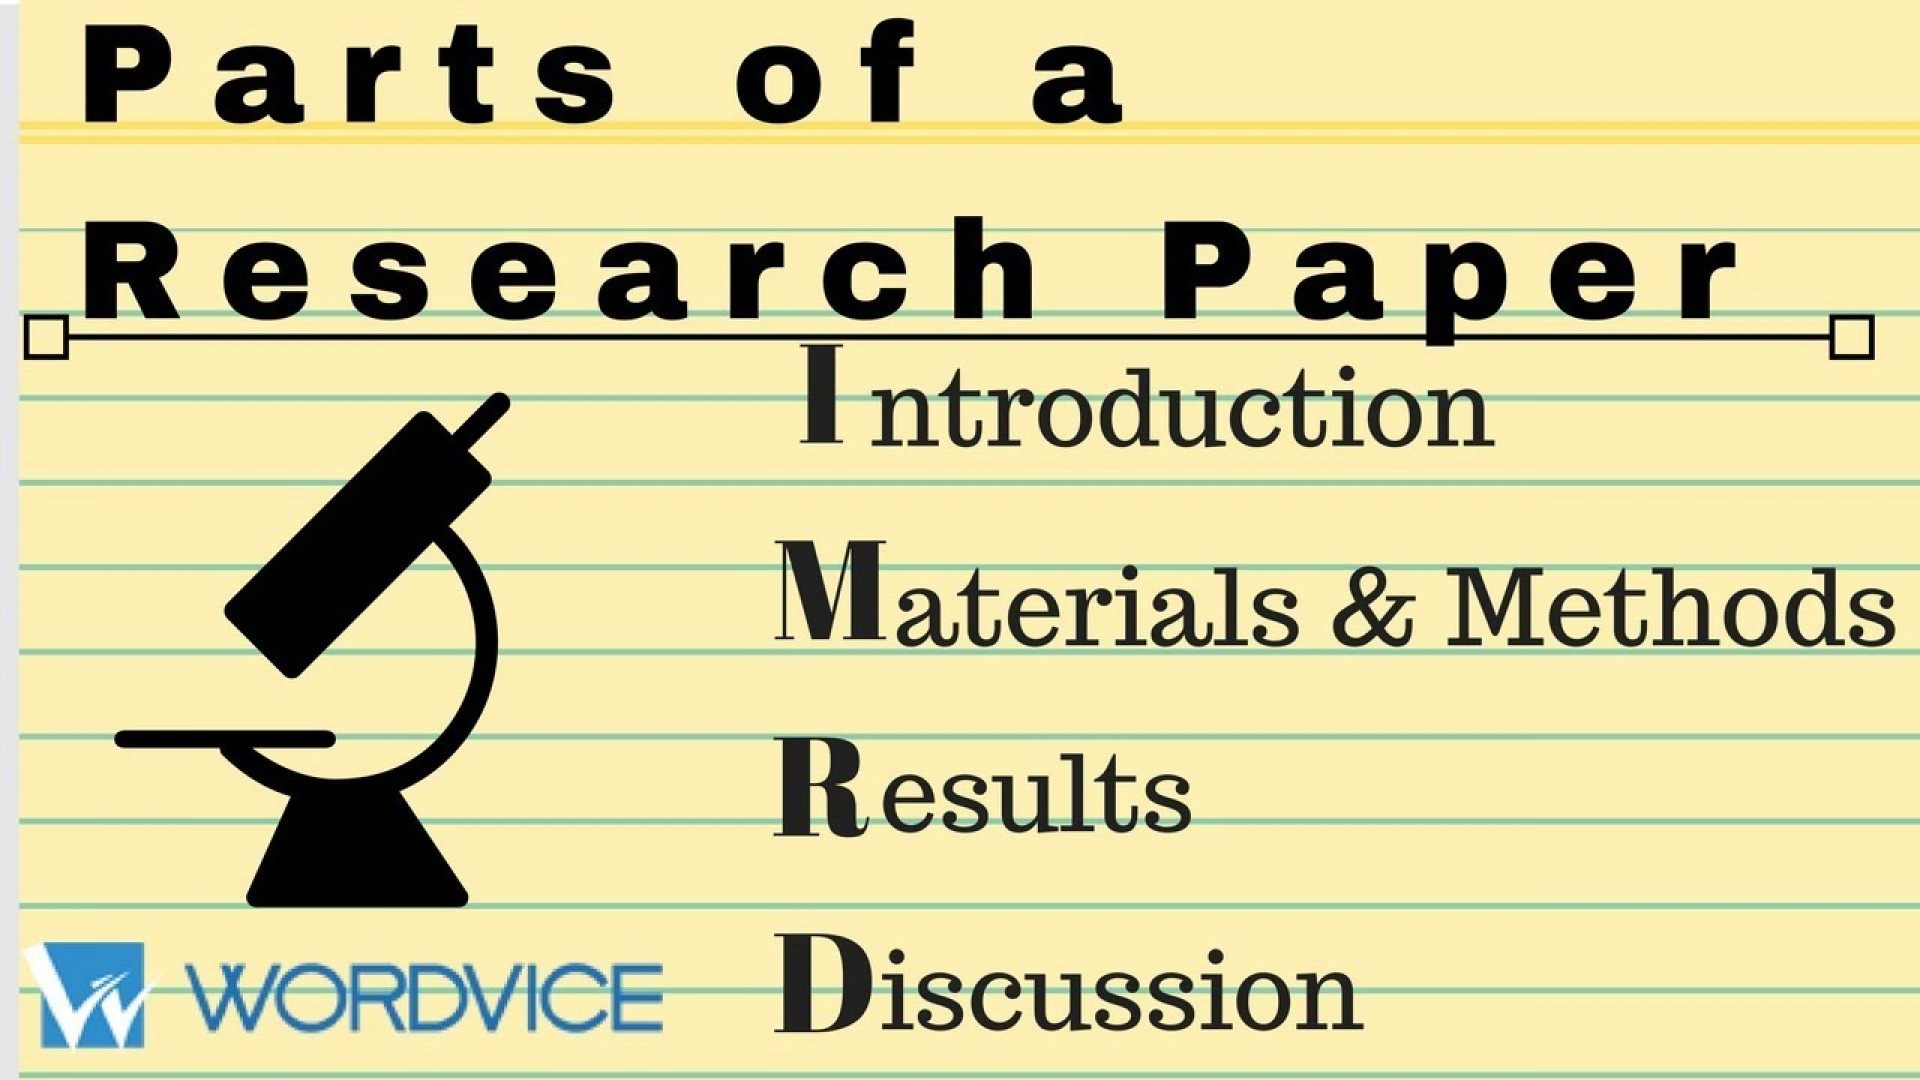 004 Maxresdefault Research Paper Parts Of Stirring A Which The Following In Mla Format Is Not Double-spaced Quantitative Pdf Quiz 1920